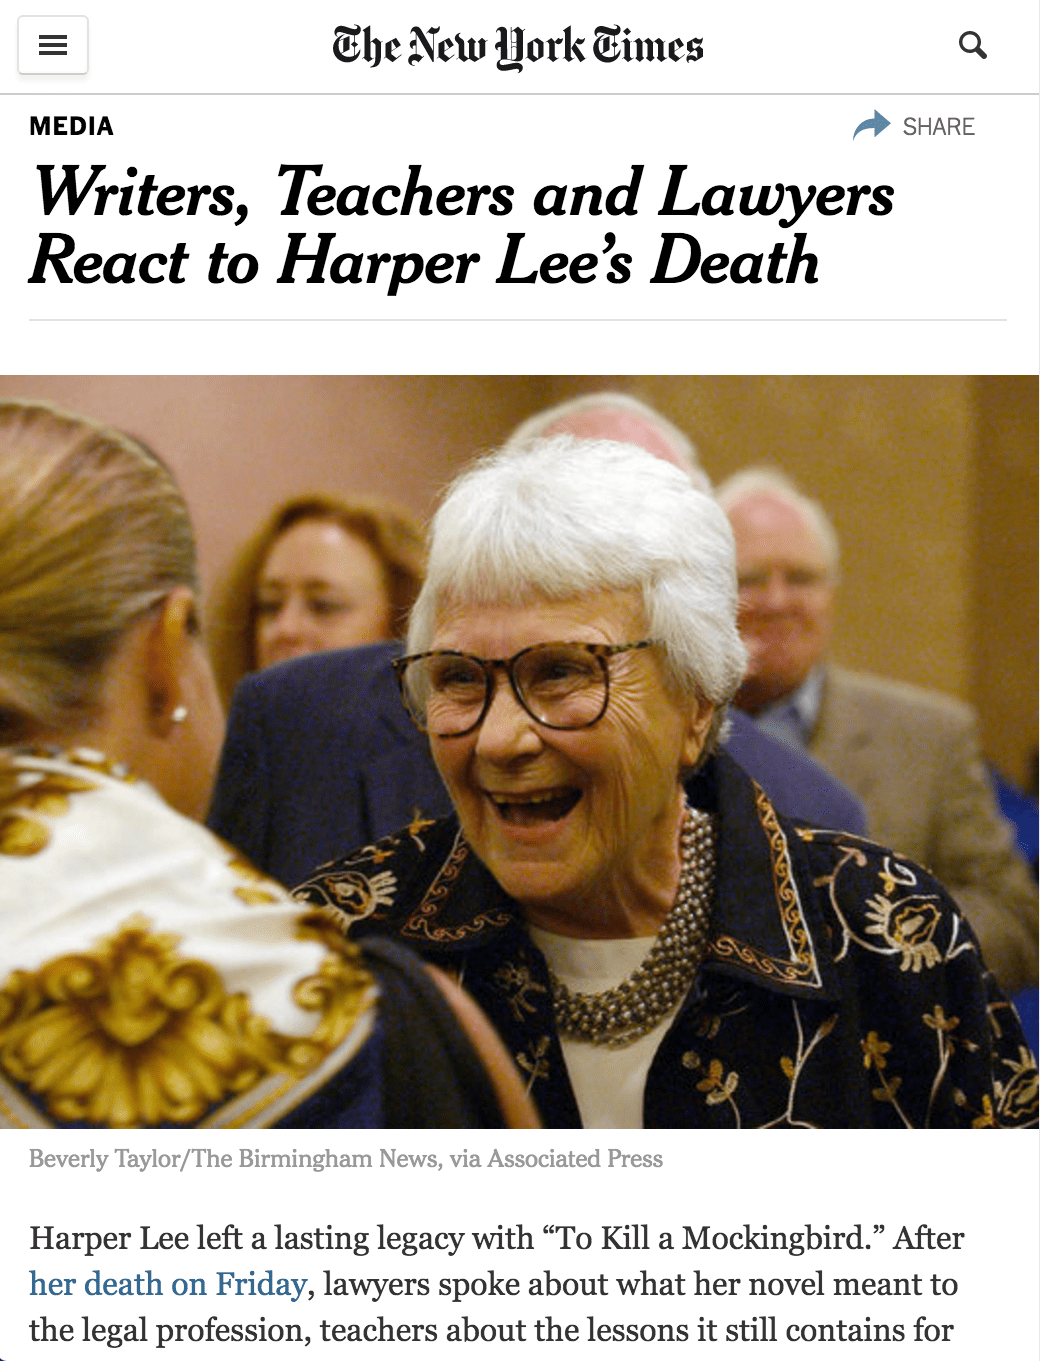 New York Times: Writers, Teachers and Lawyers React to Harper Lee's Death [Interview]